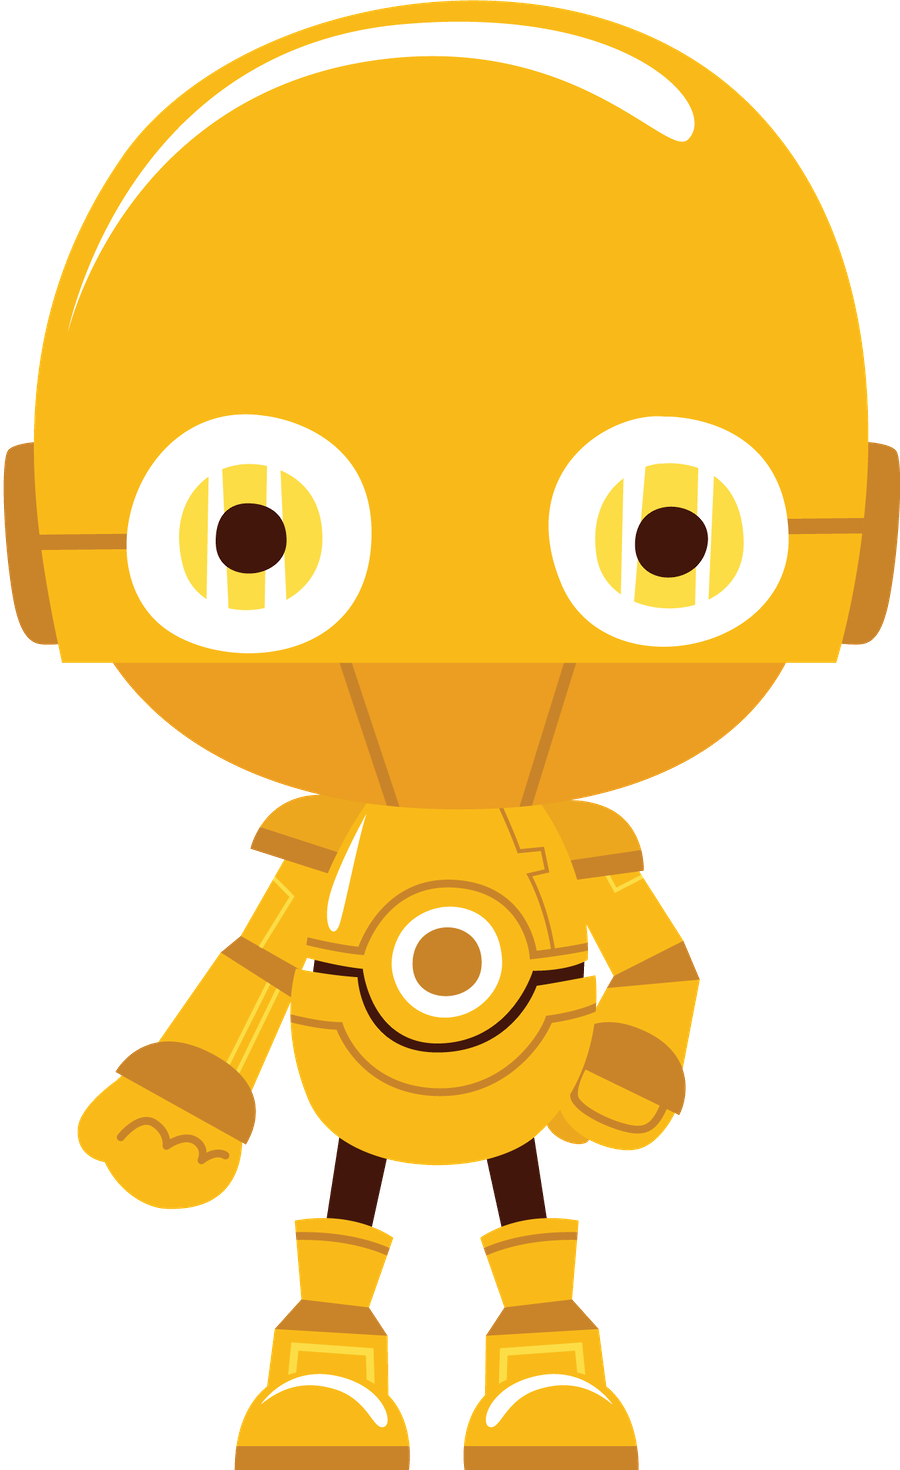 jpg transparent download Star Wars Clipart orange robot